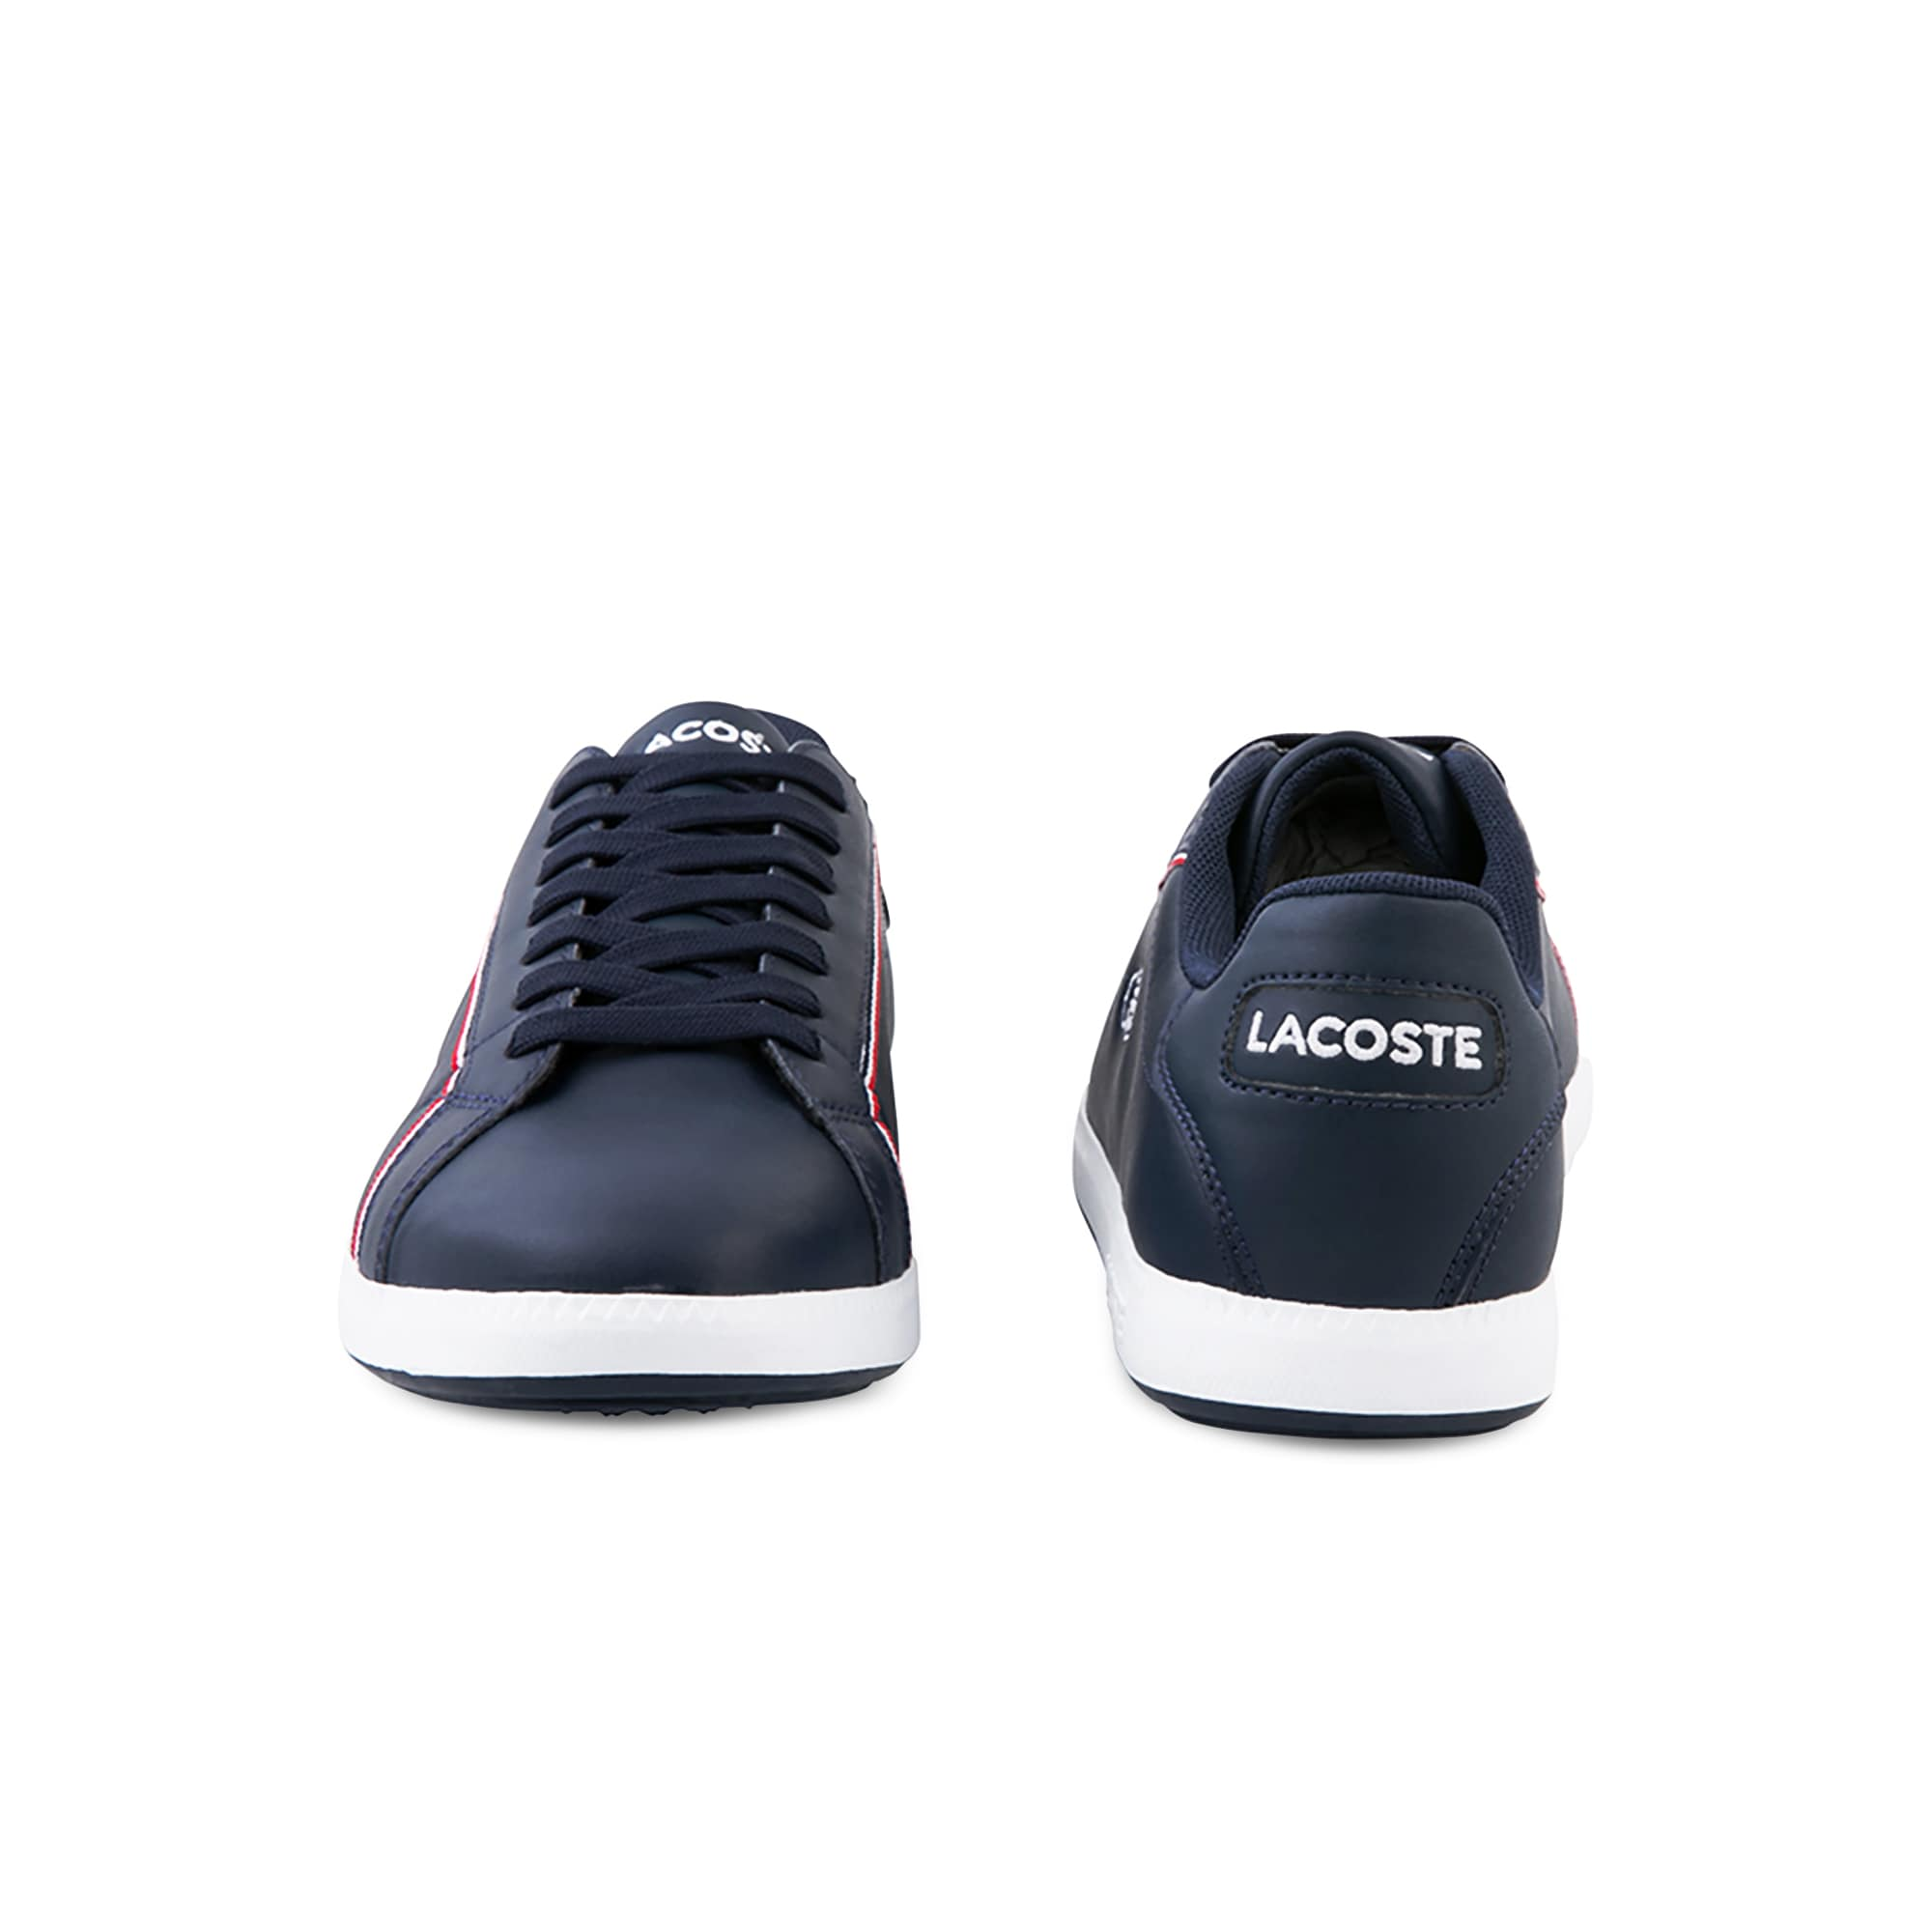 3c2c63028c Women's Graduate Leather and Synthetic Sneakers